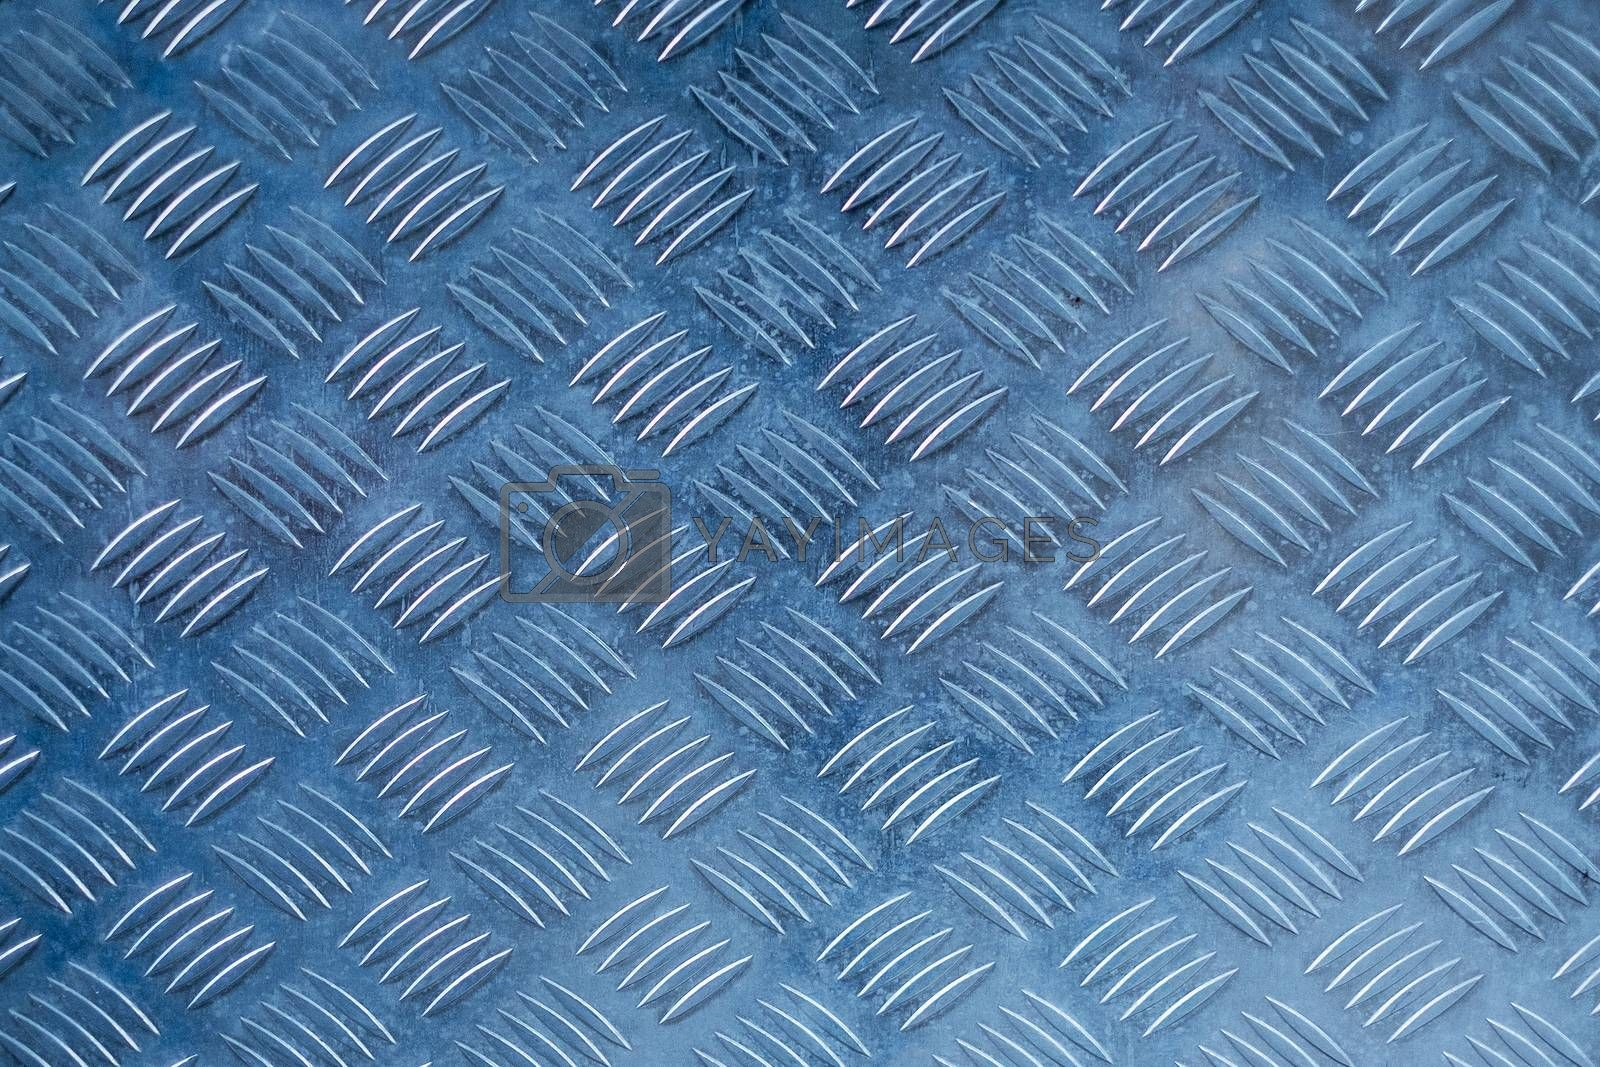 Blue Metal silver with rhombus shapes and texture